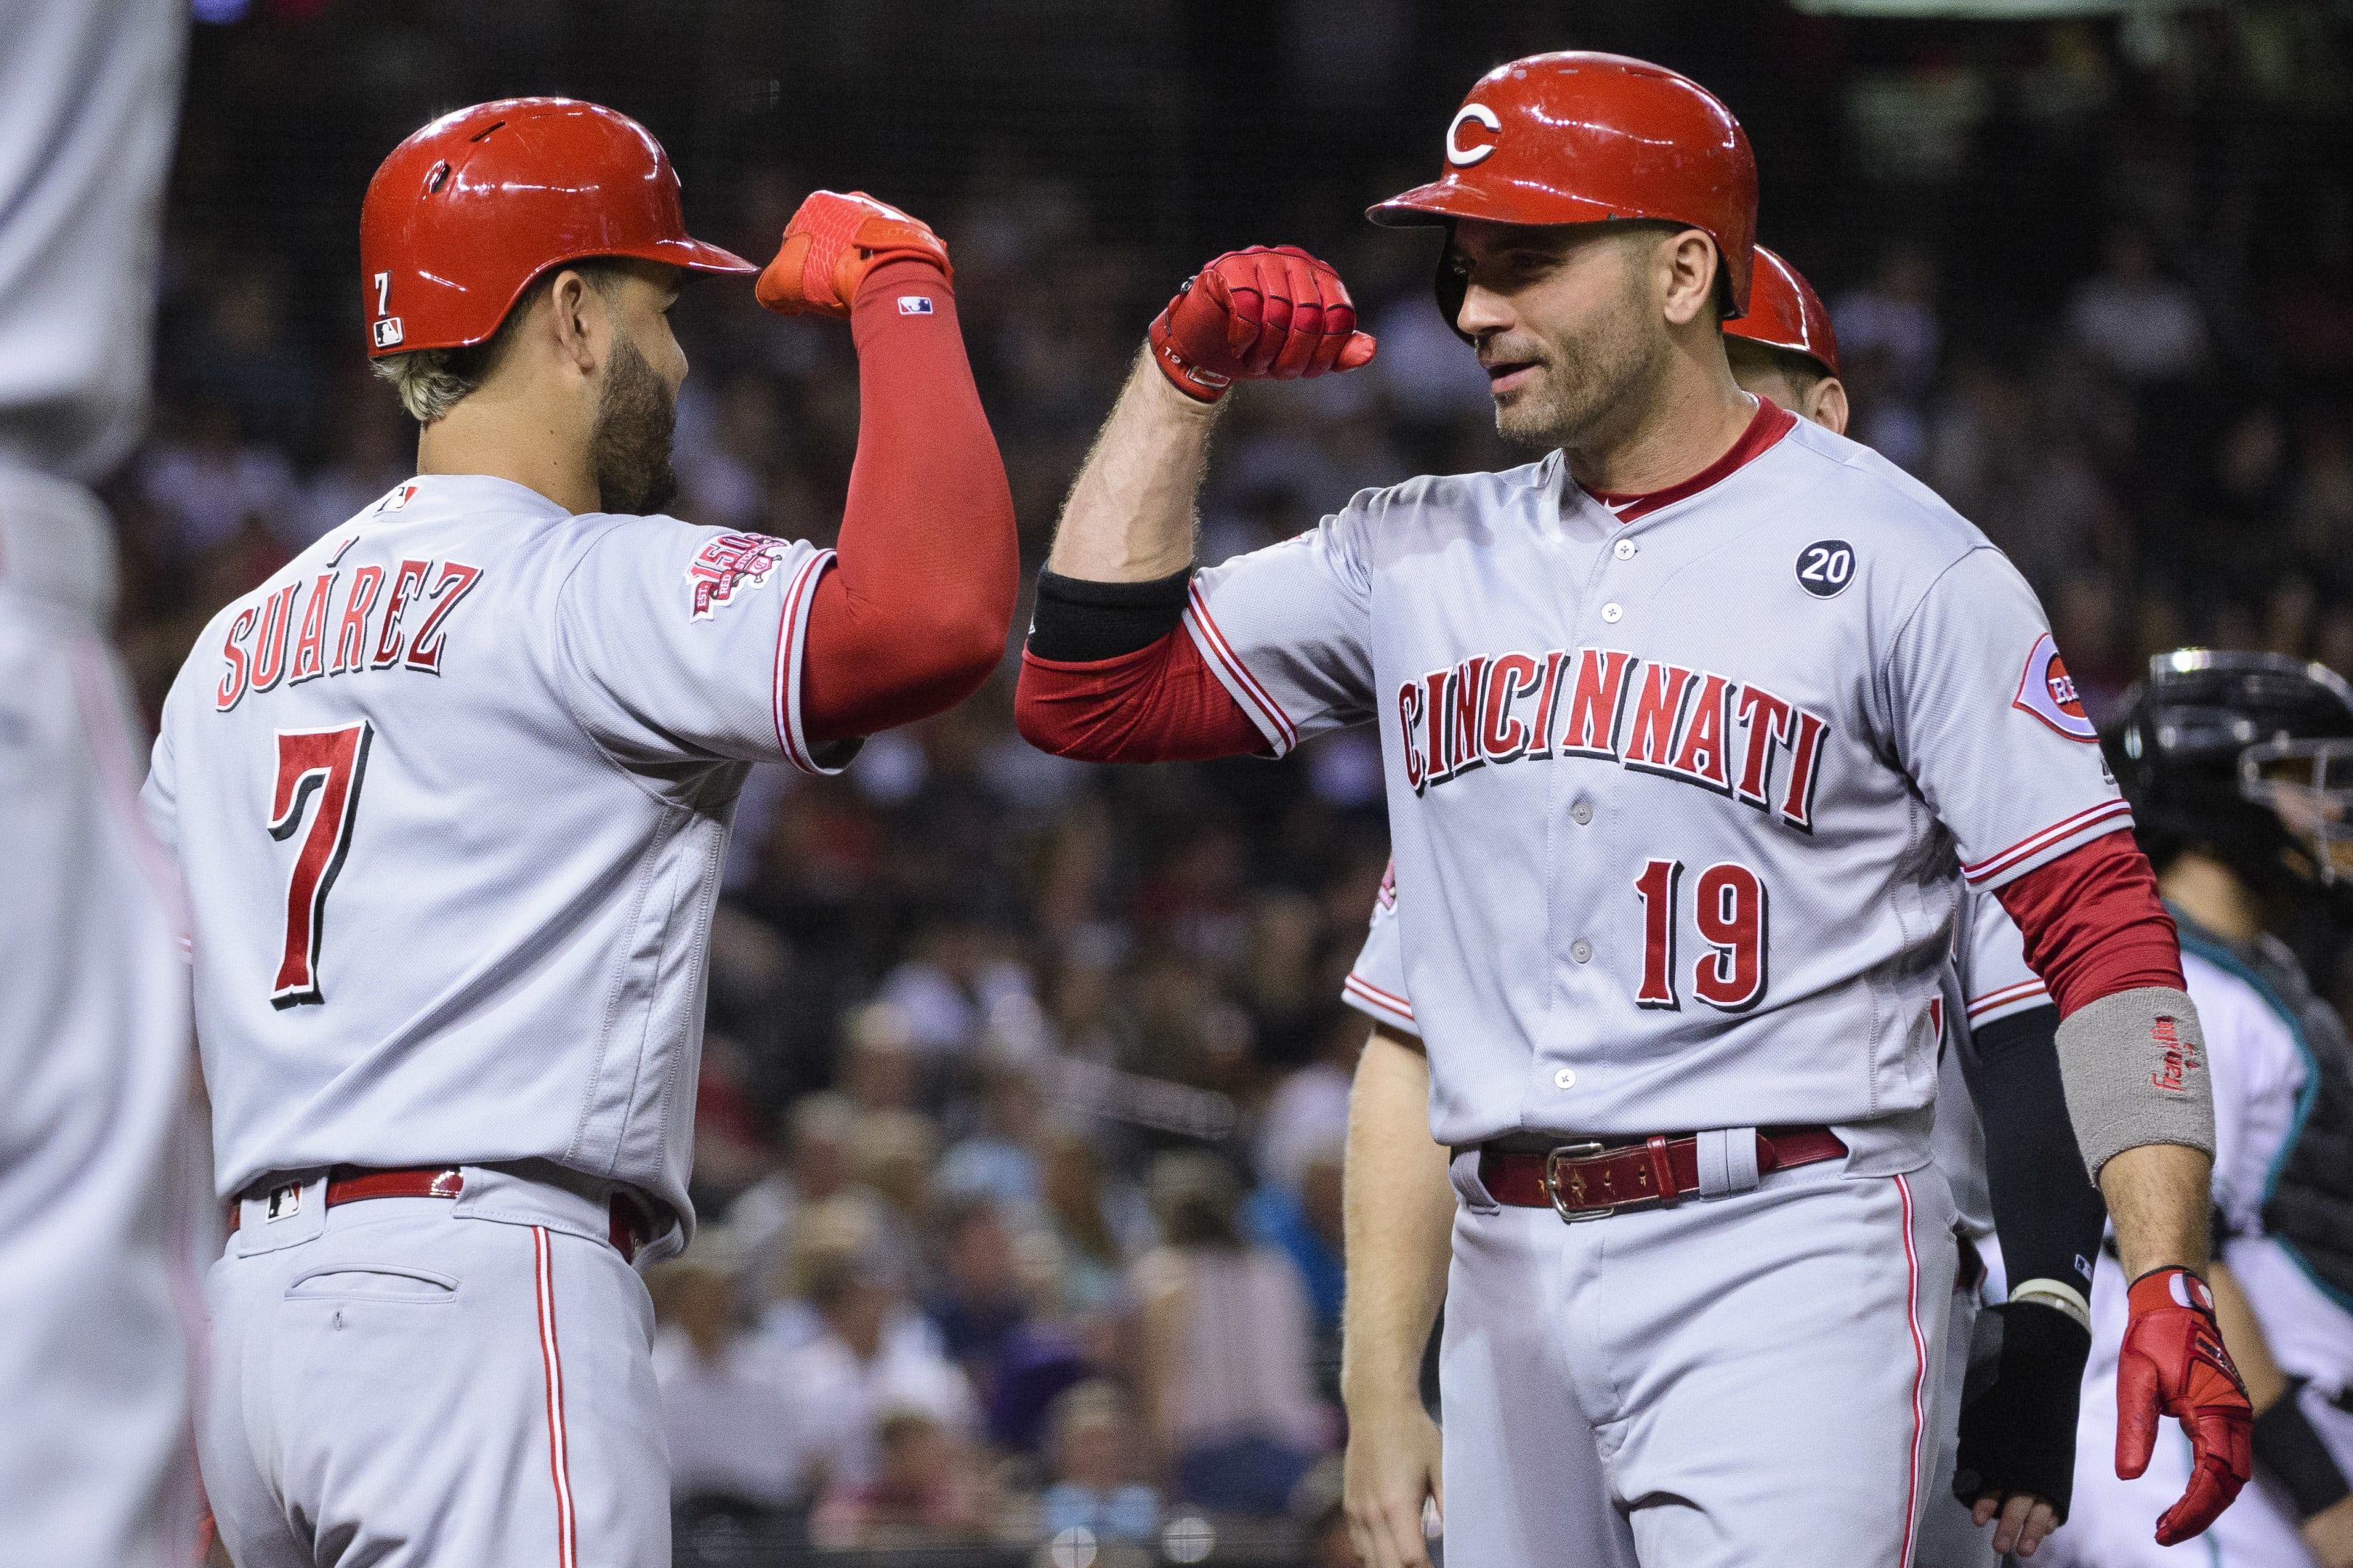 Cincinnati Reds: Way-too-early 2020 Opening Day roster predictions